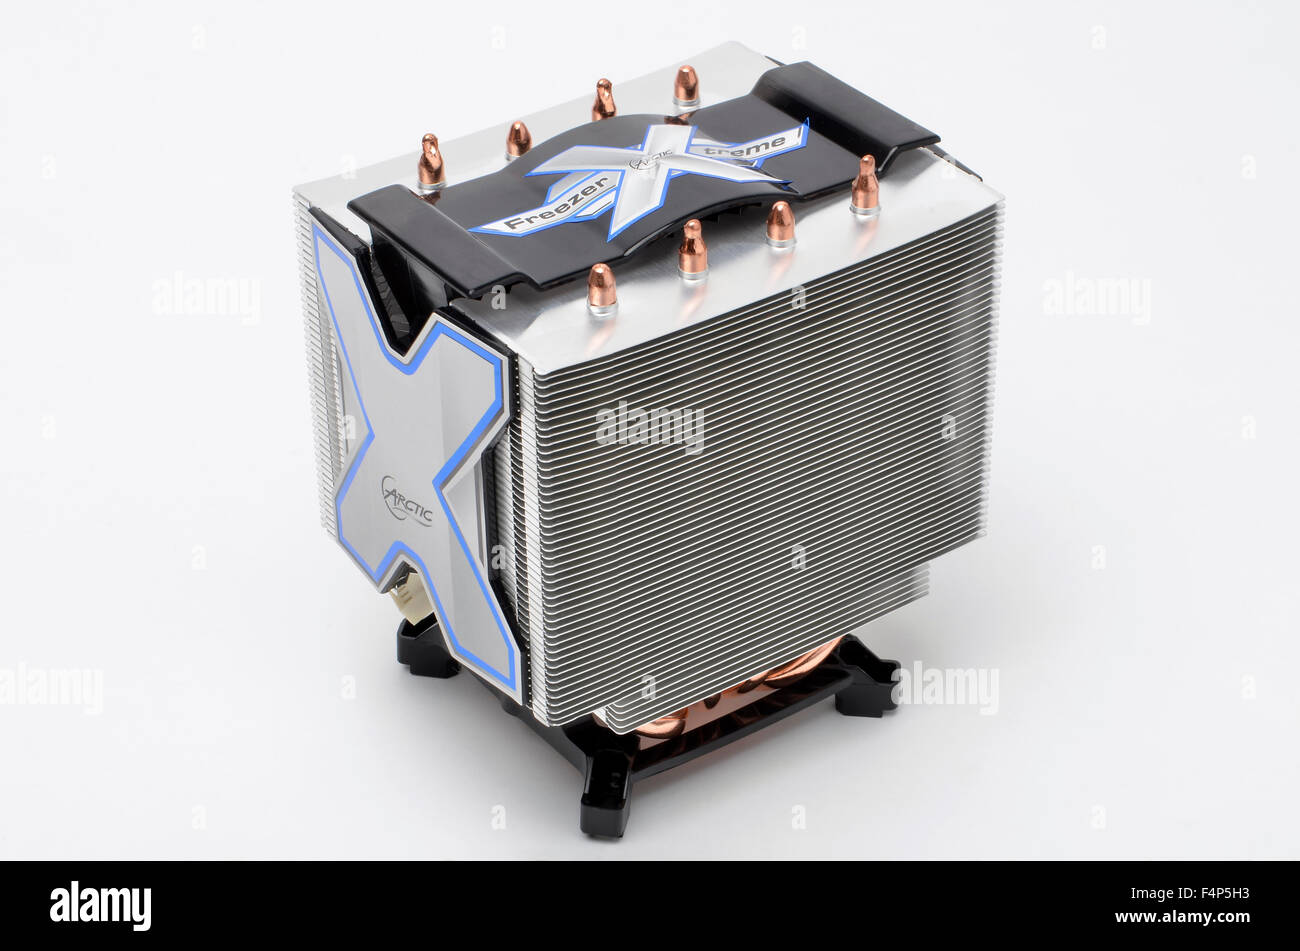 Arctic Cooling Freezer Xtreme CPU cooler and mounting cradle. - Stock Image